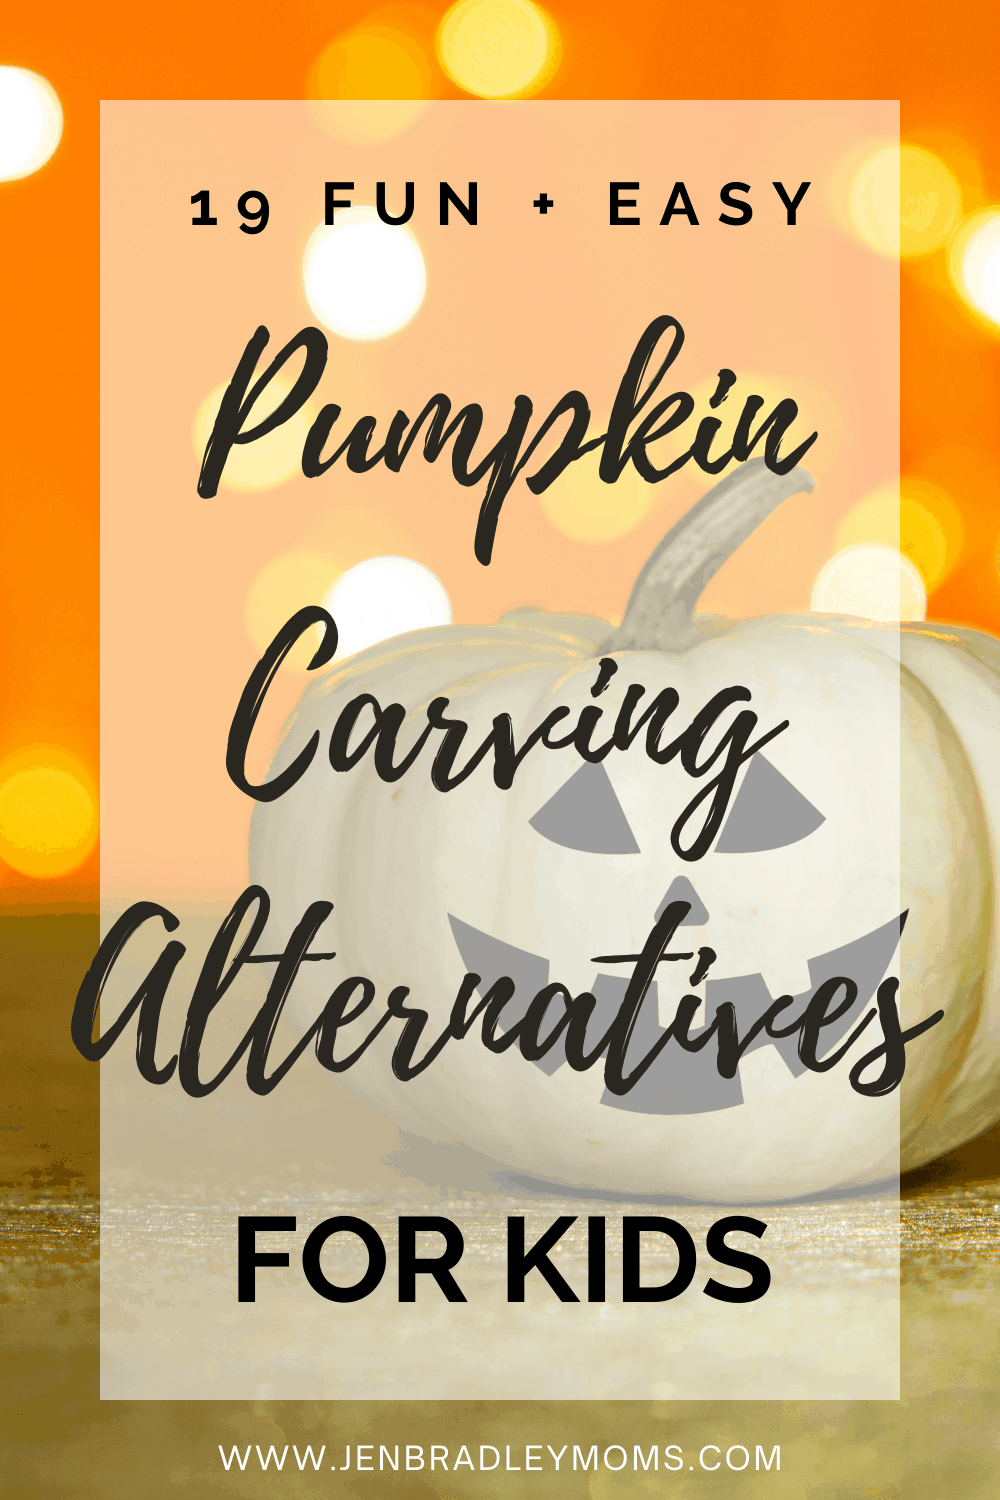 19 Easy Pumpkin Carving Alternatives You Need to Try with Your Kids